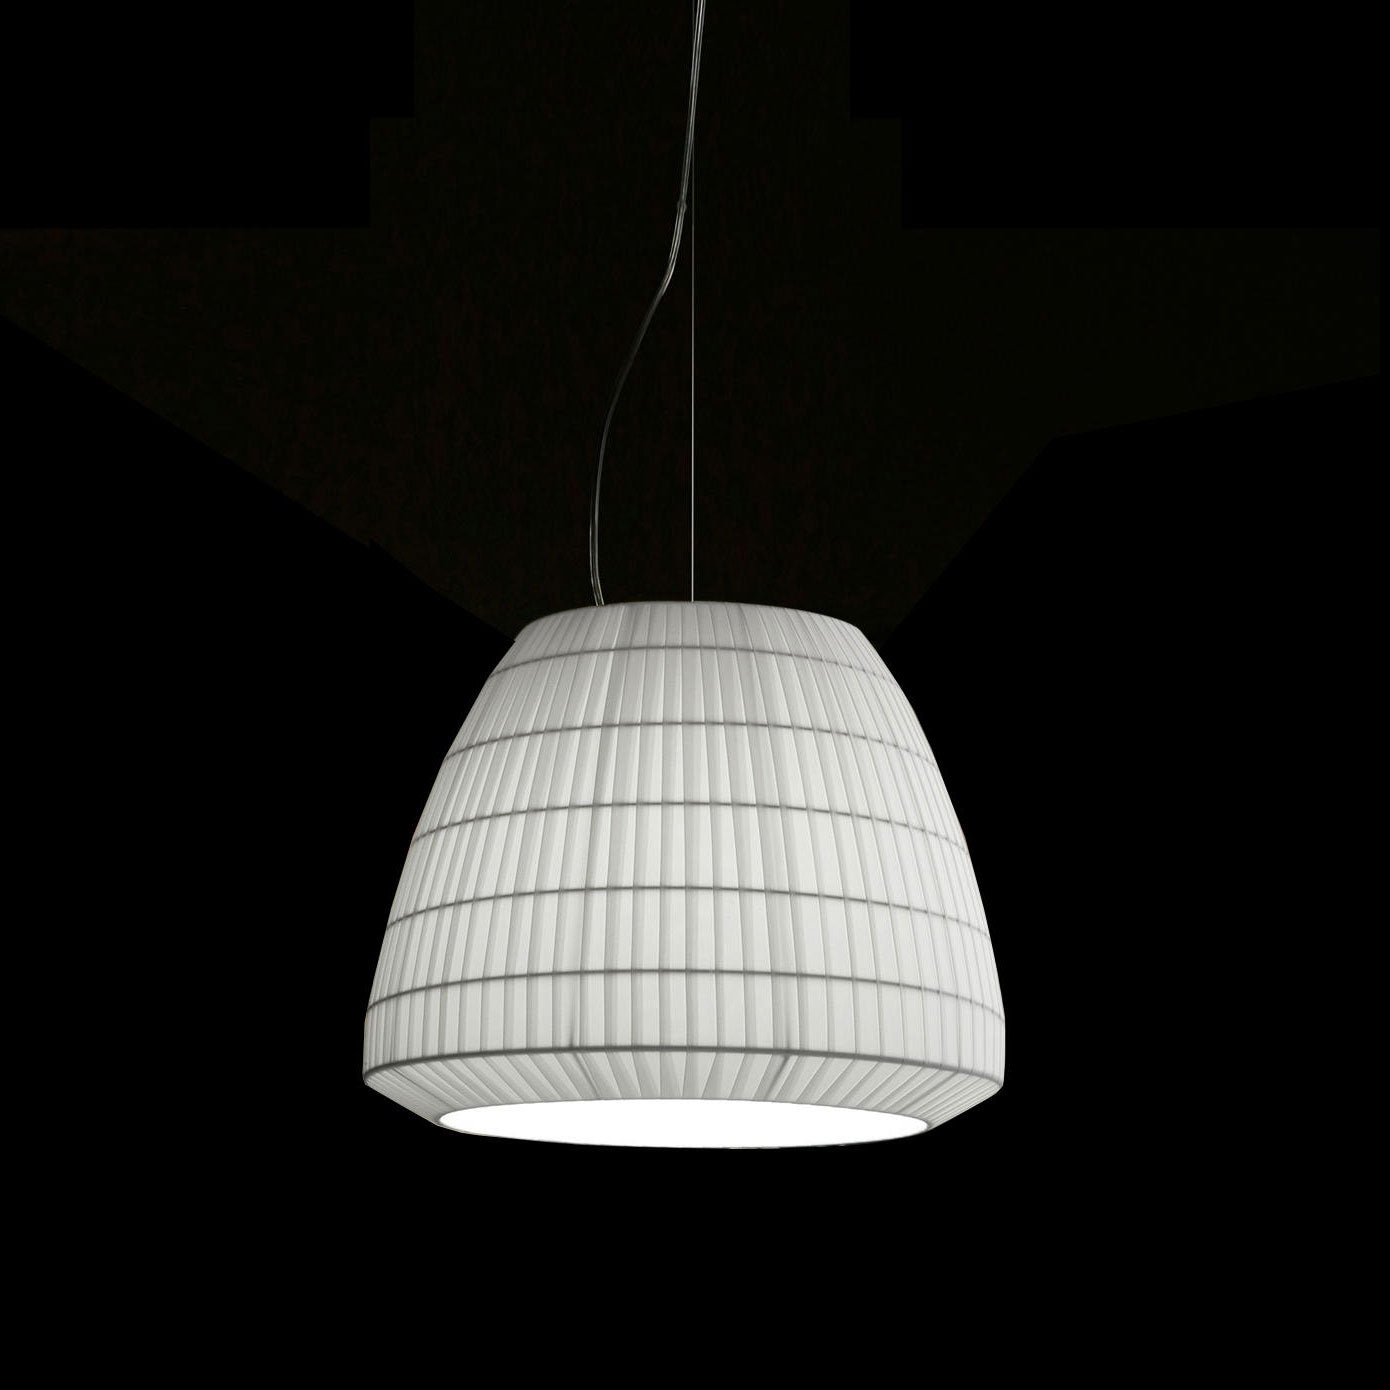 Bell 045 Pendant Lamp by Axo